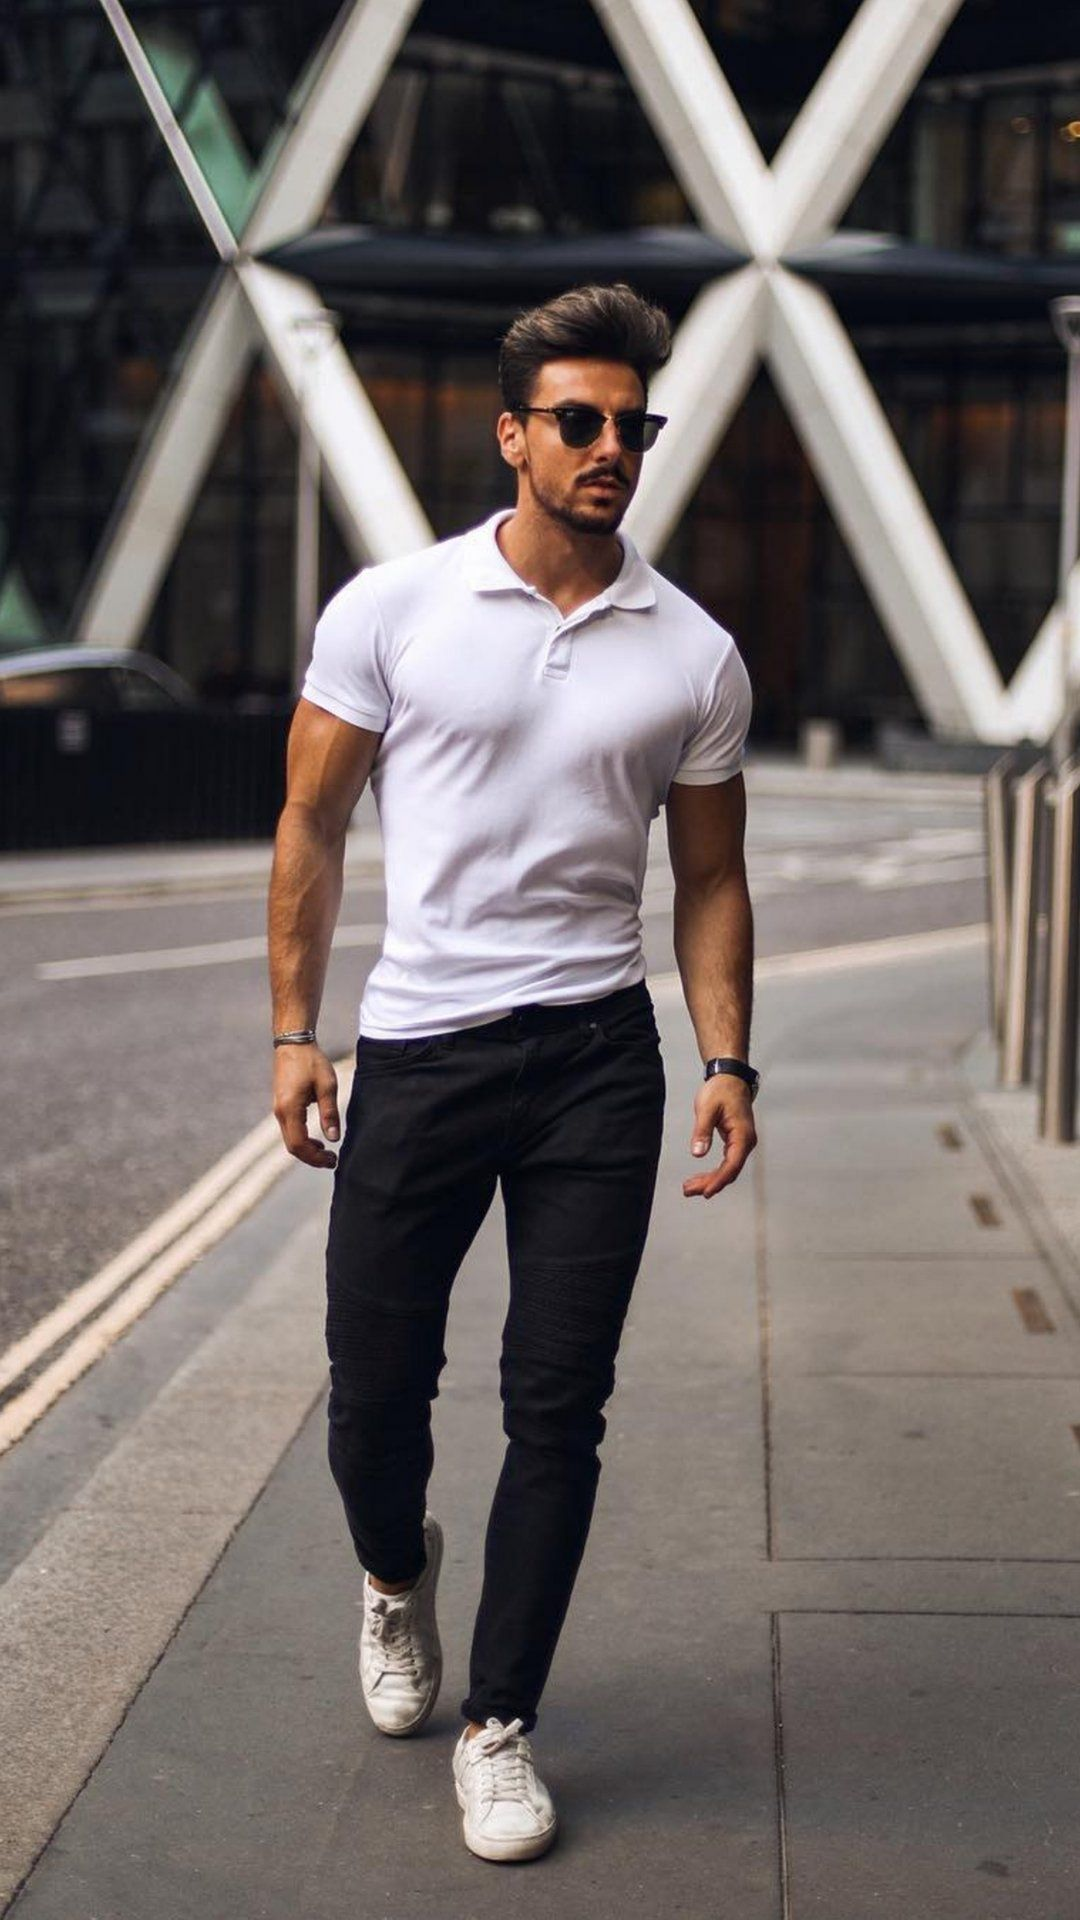 15 Men S Casual Style Inspirations That Make You More Confident Fashions Nowadays Stylish Men Casual Mens Casual Outfits Mens Fashion Casual Outfits [ 1920 x 1080 Pixel ]